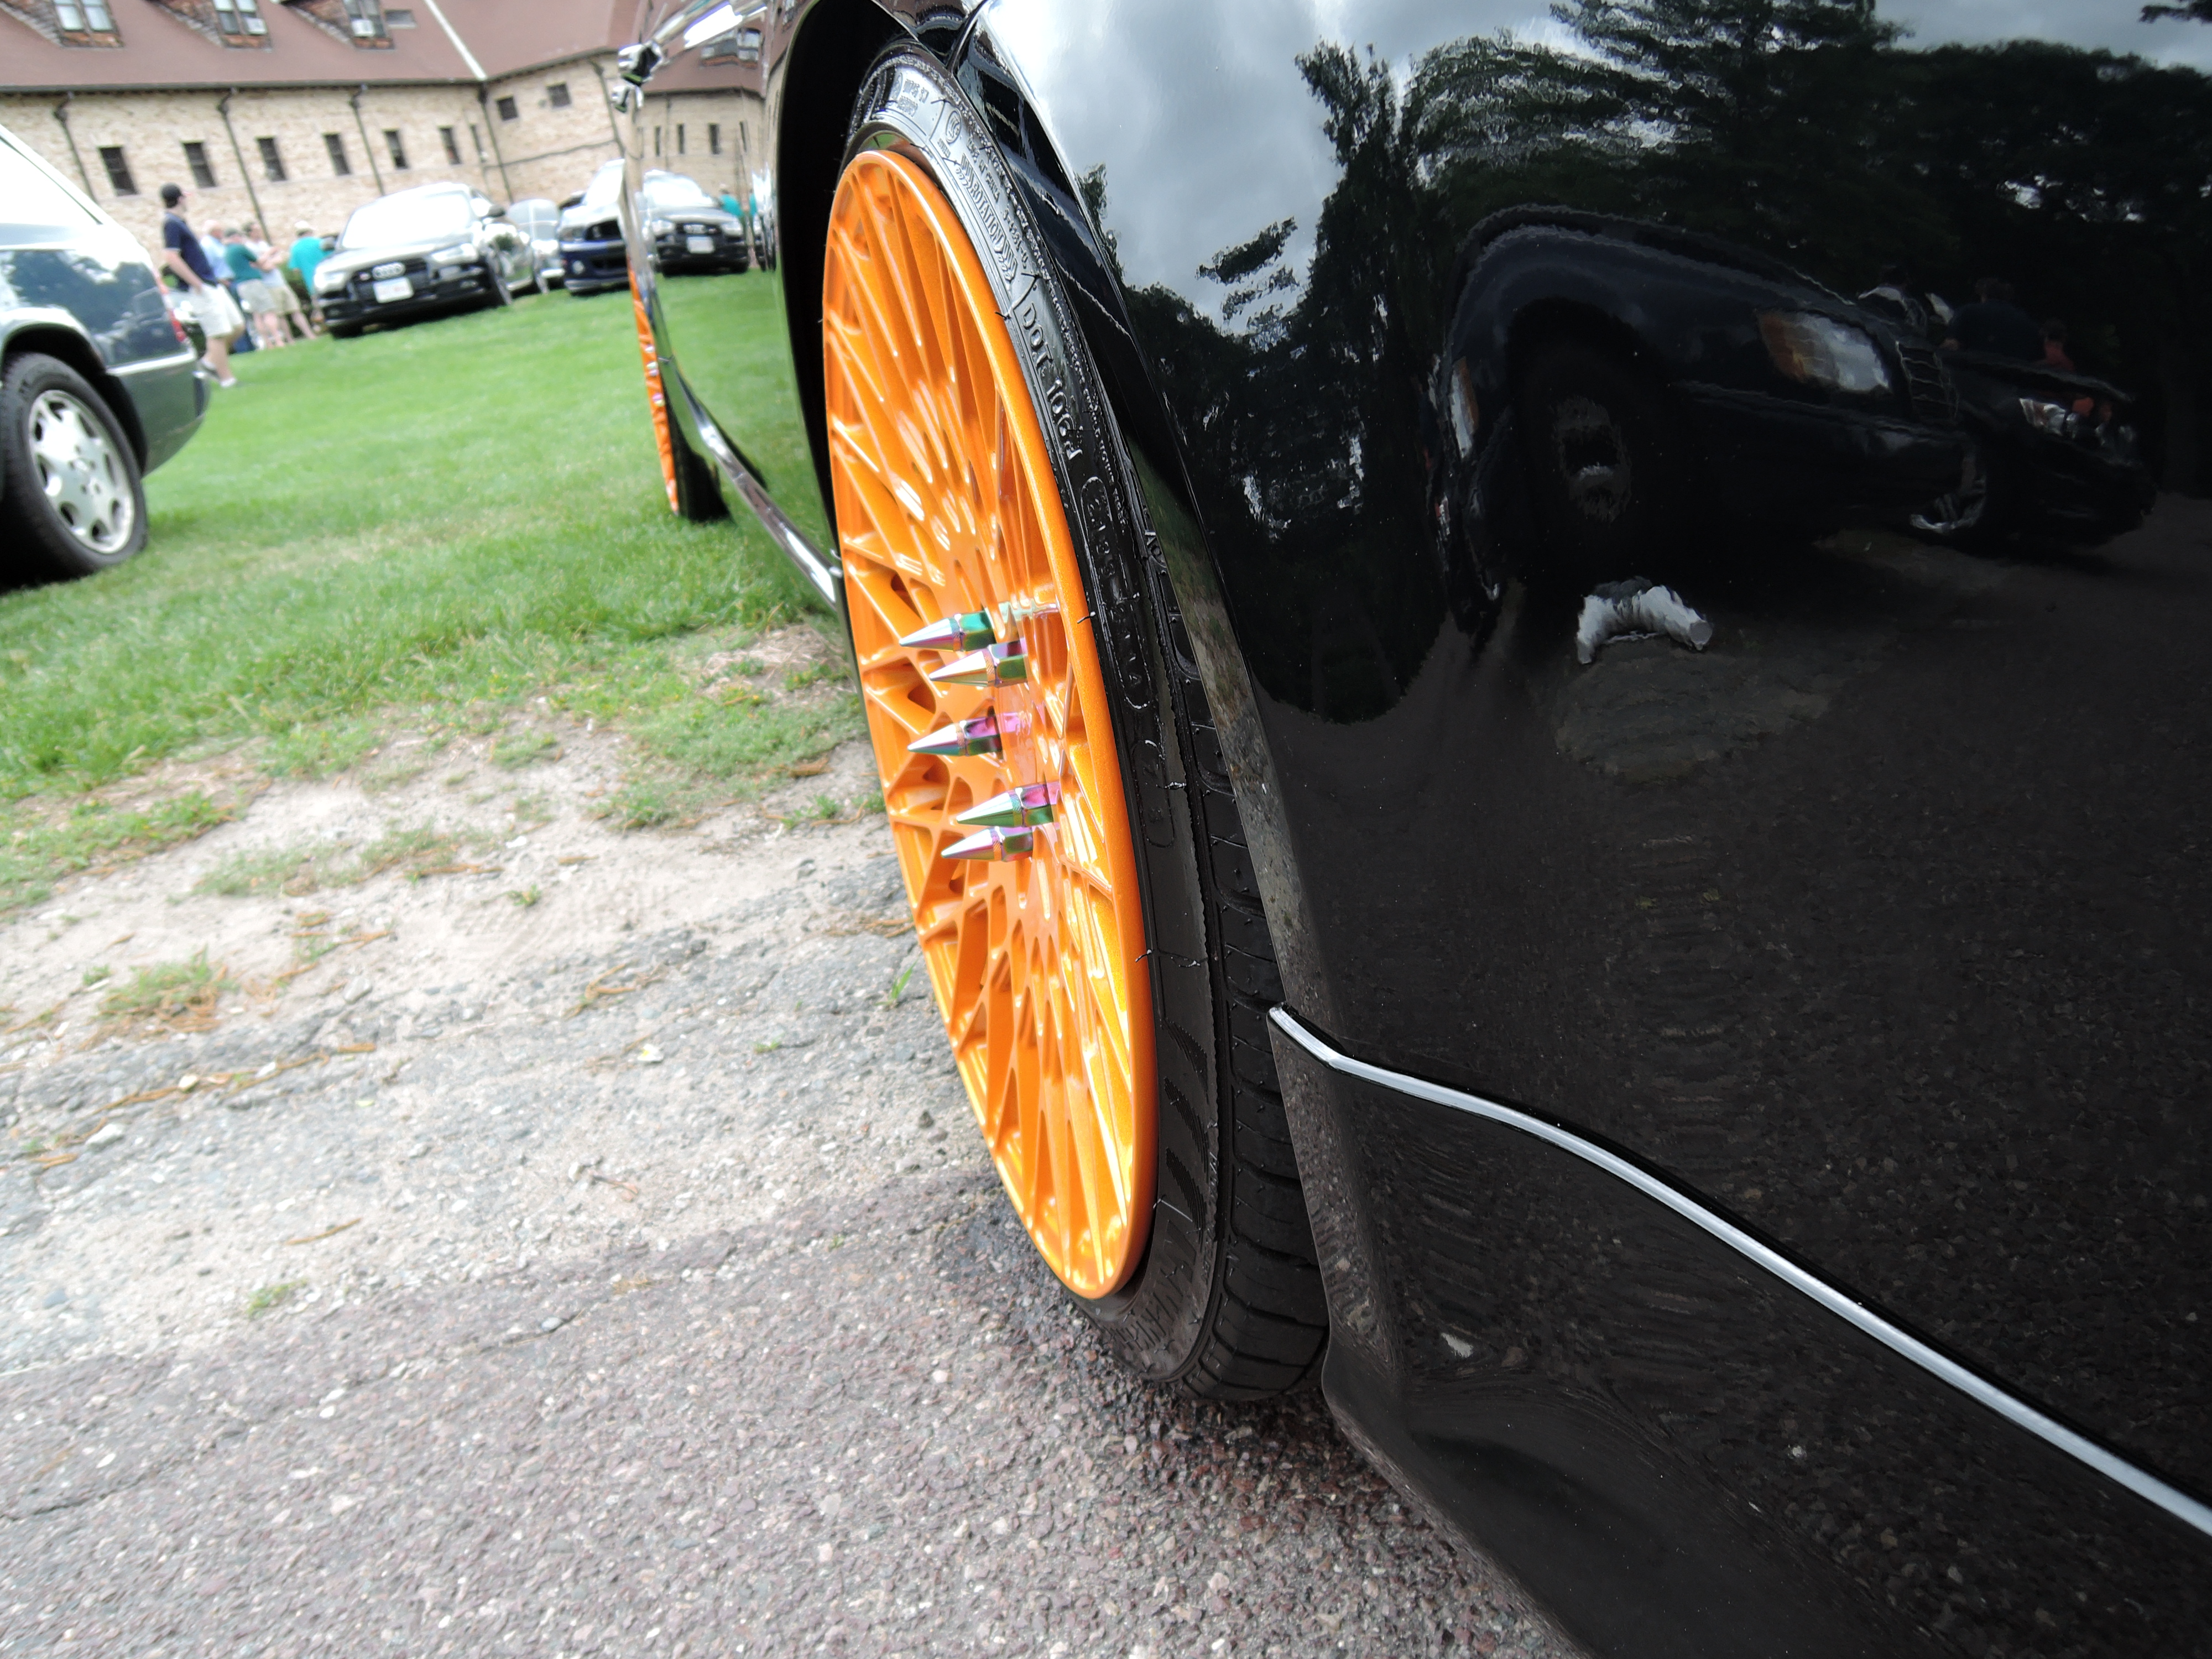 Cars and Coffee Car Show at Lars Anderson; Orange tire rim wheel